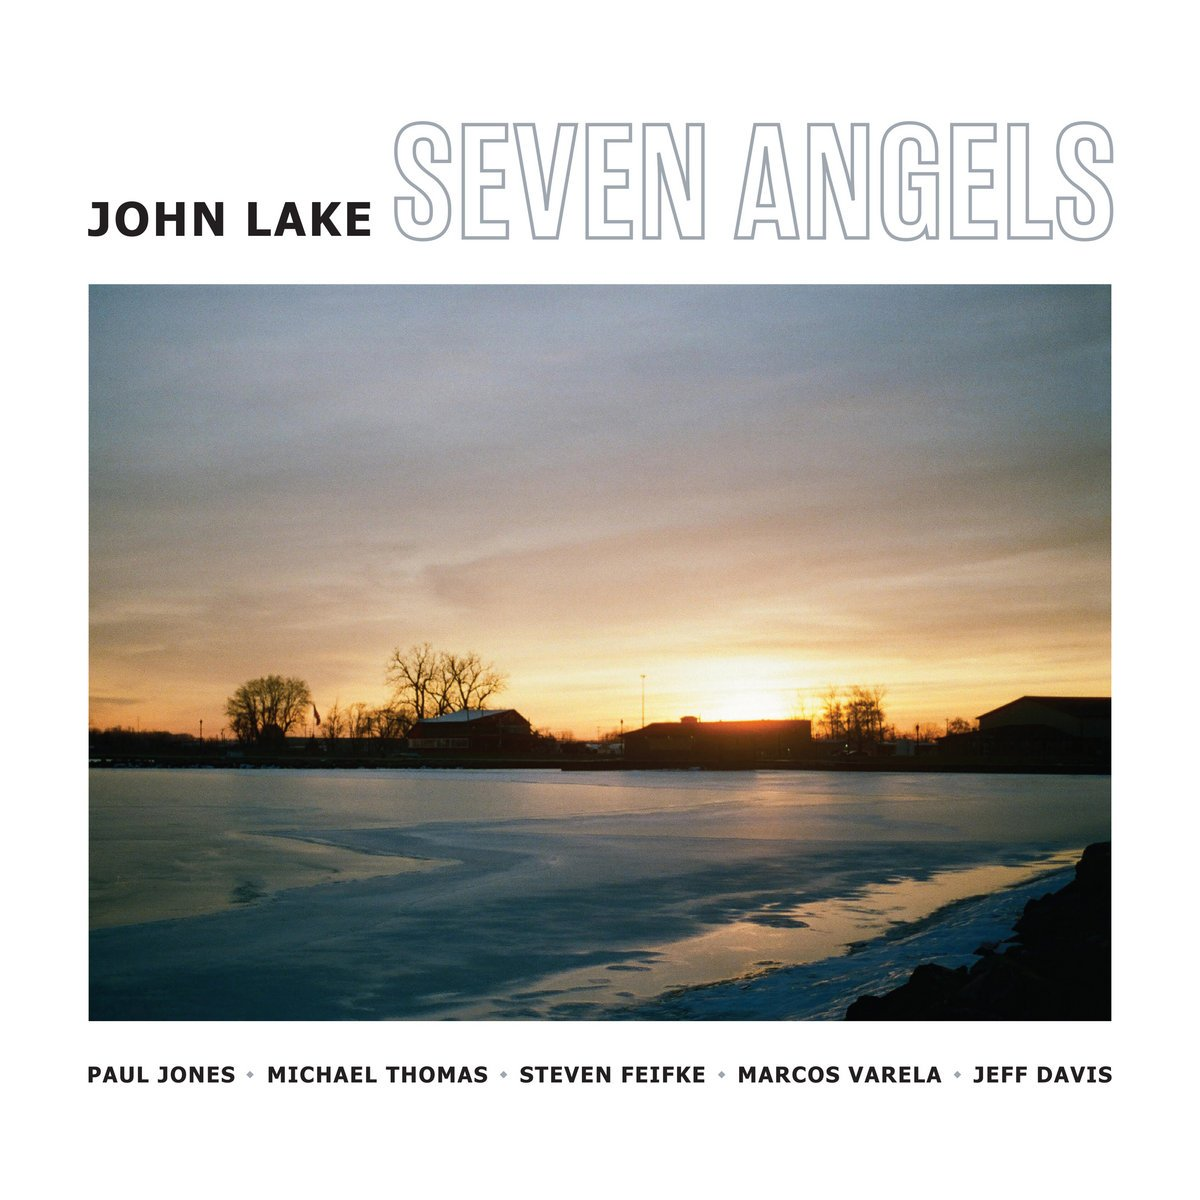 John Lake - Seven Angels